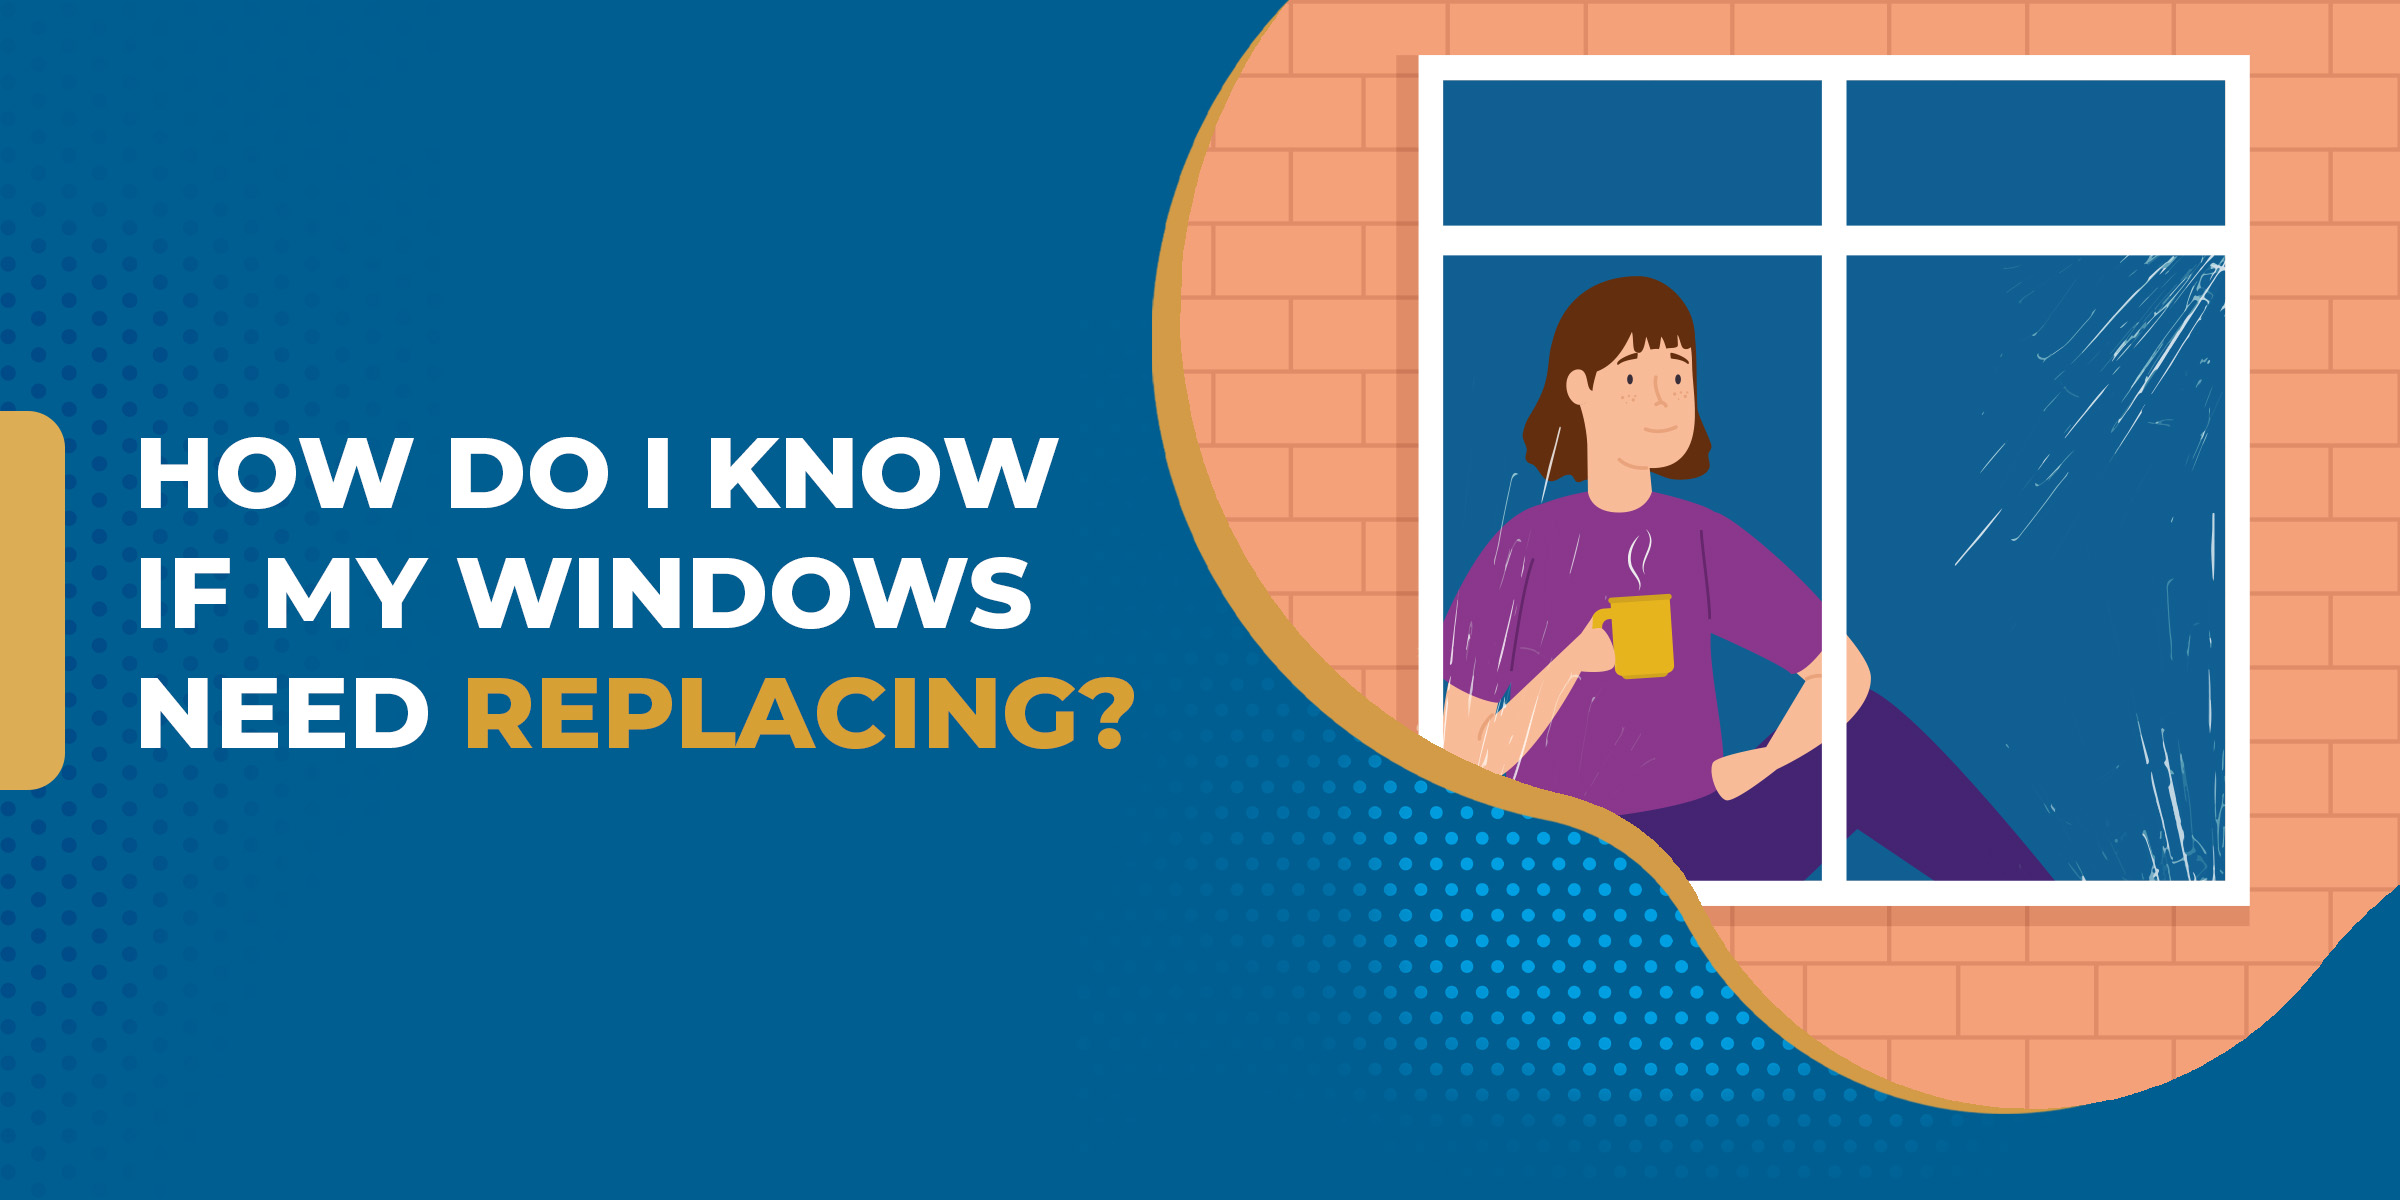 How do I know if my windows need replacing